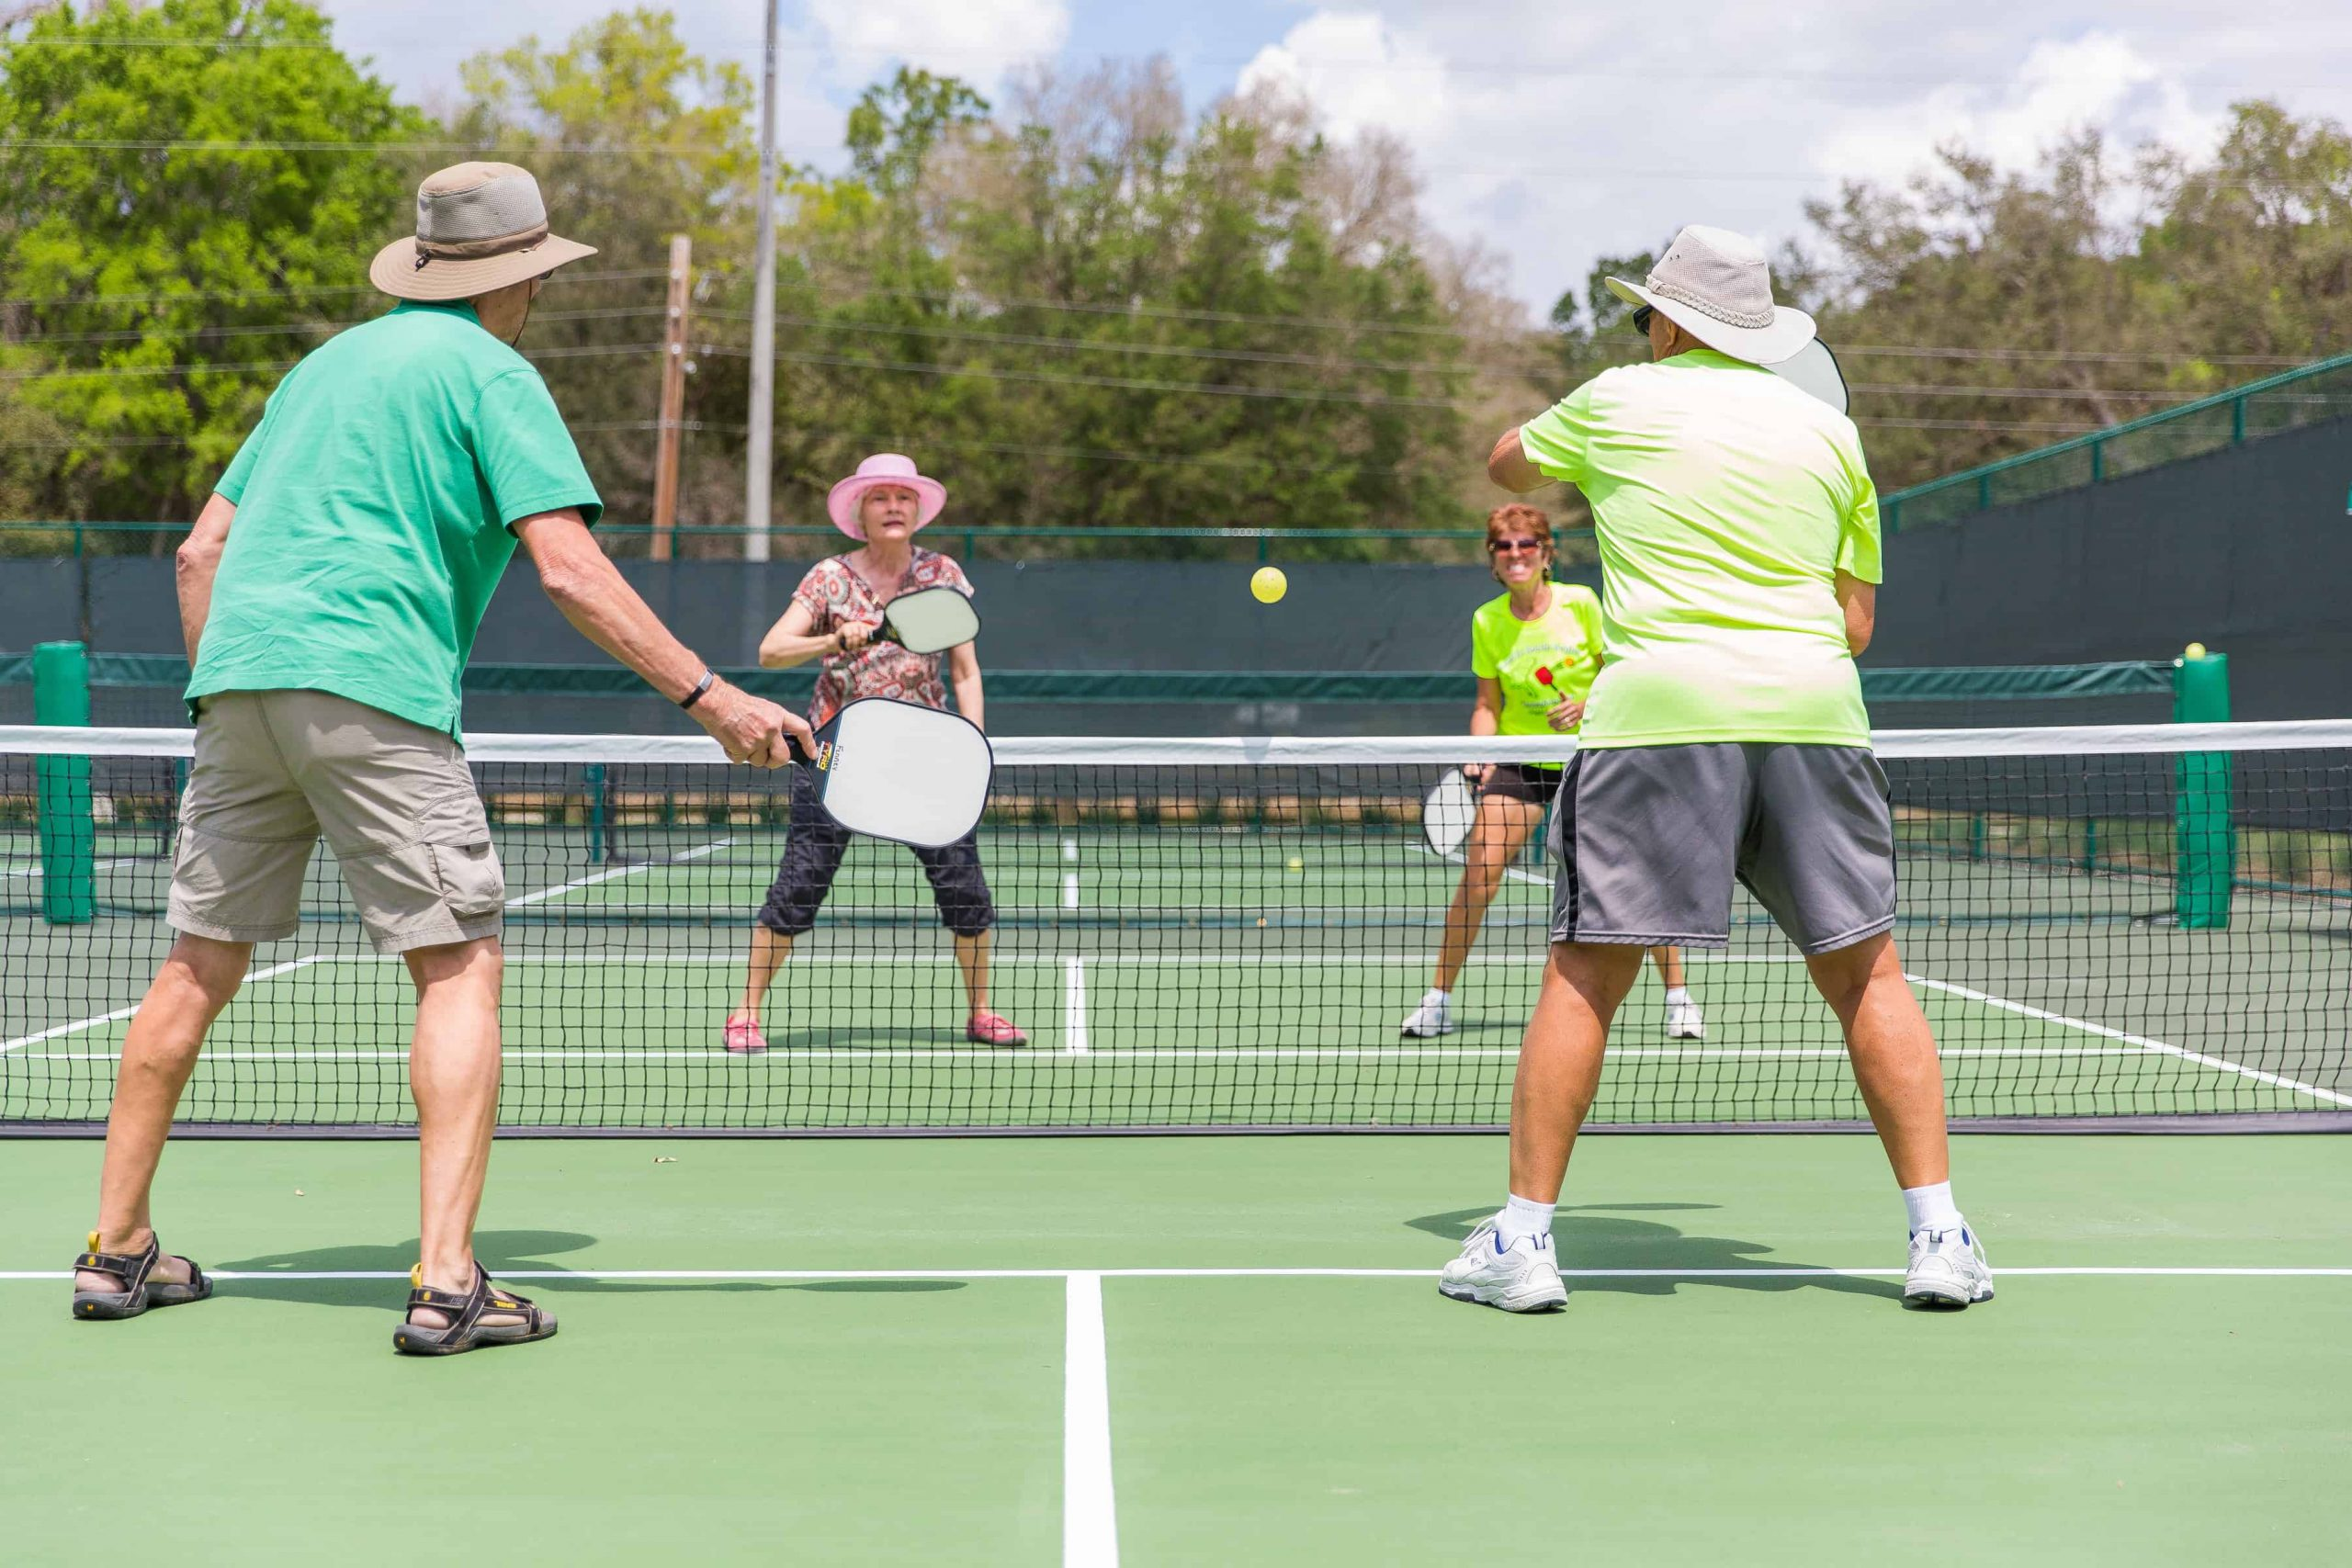 10 Fast-Moving Pickleball Paddles Reviews – Serve, Hit, Volley, and Dink in 2020